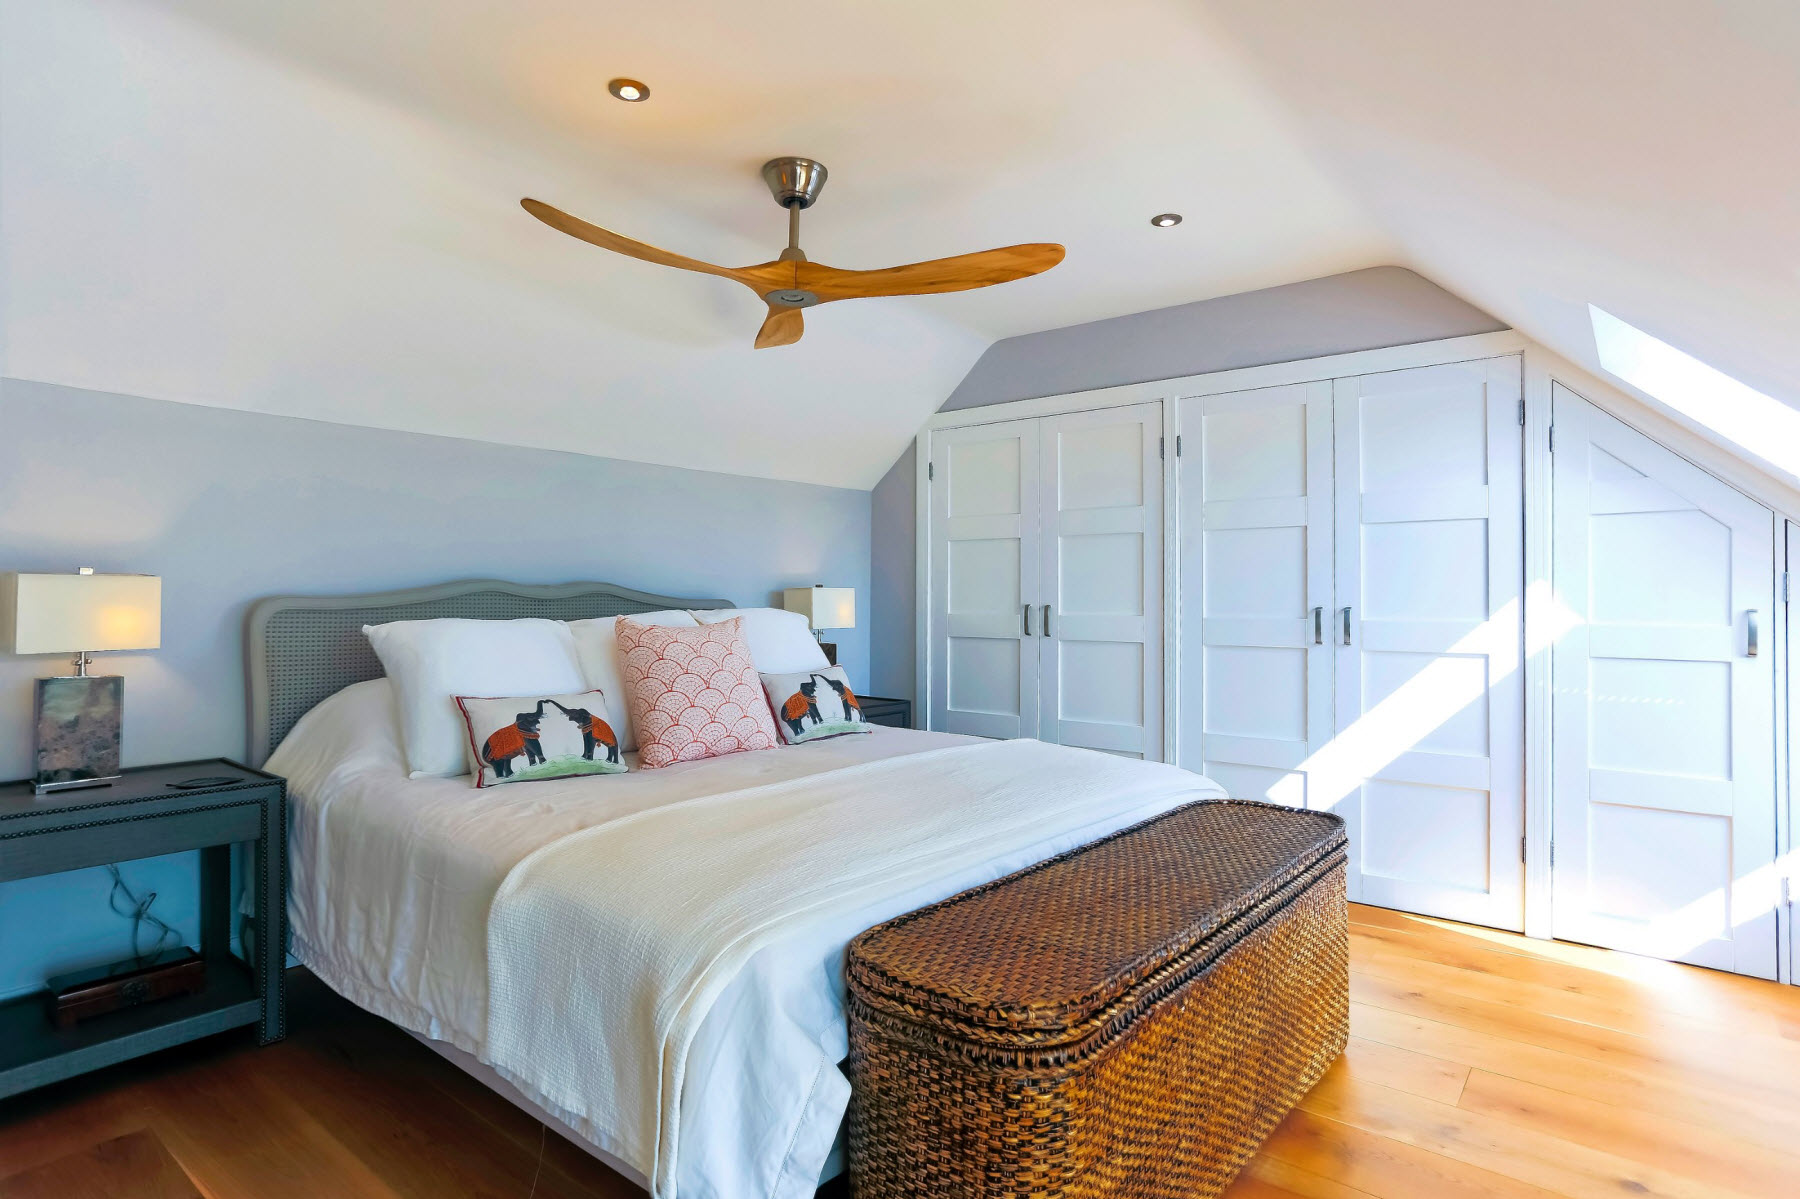 Fans For Bedrooms Exclusive Home Design